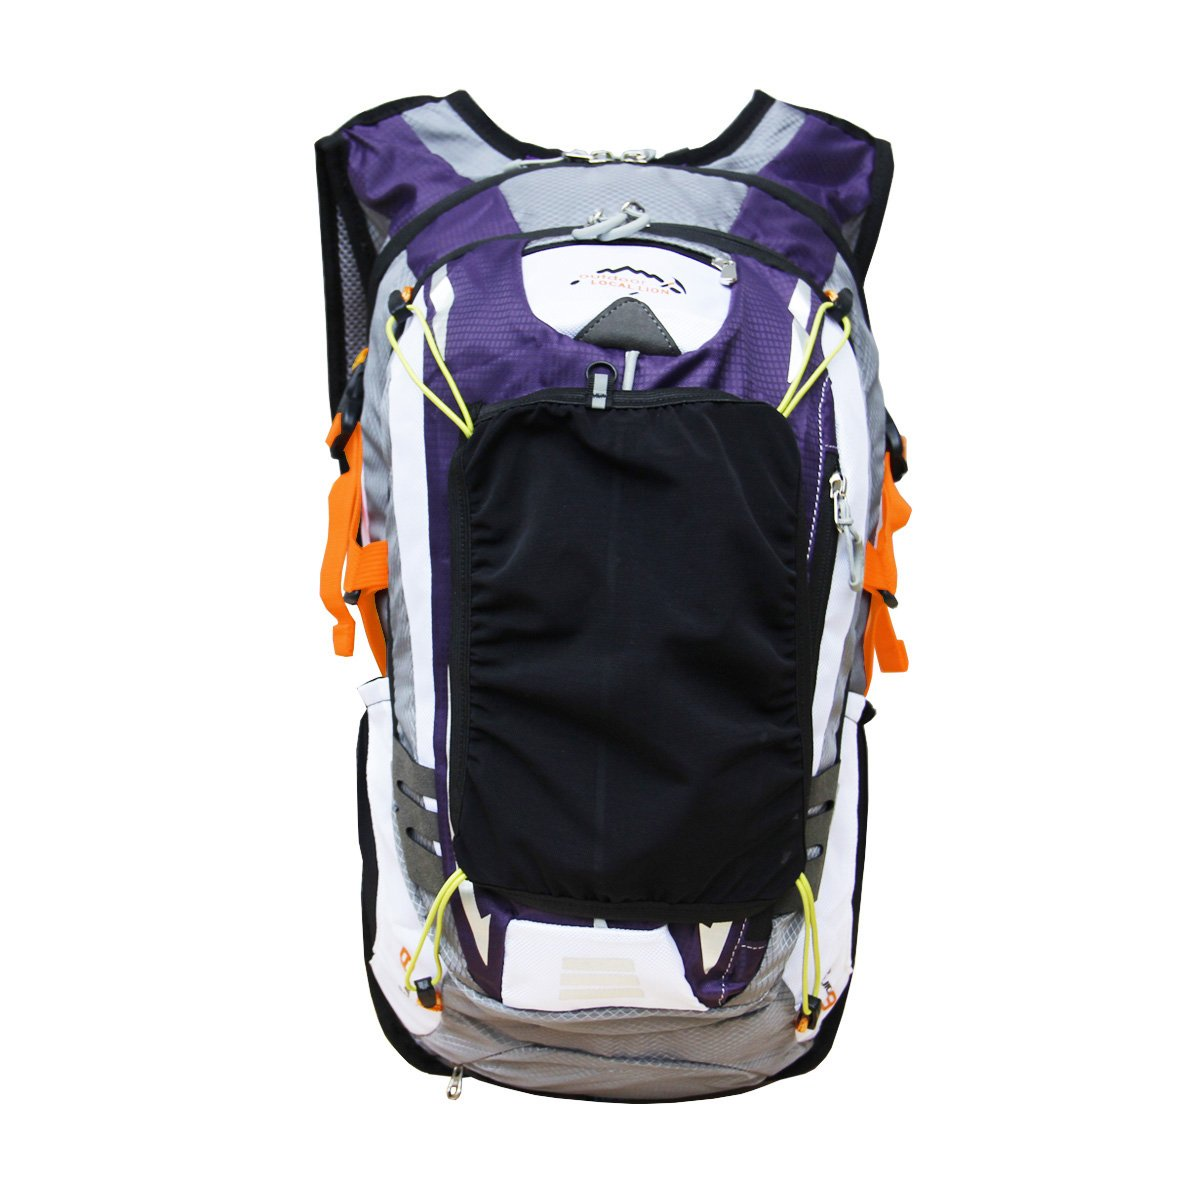 Outdoor Sports Cycling Hiking Camping Travel Daypack, Water resistant, 18L(purple) by YOGOGO (Image #6)